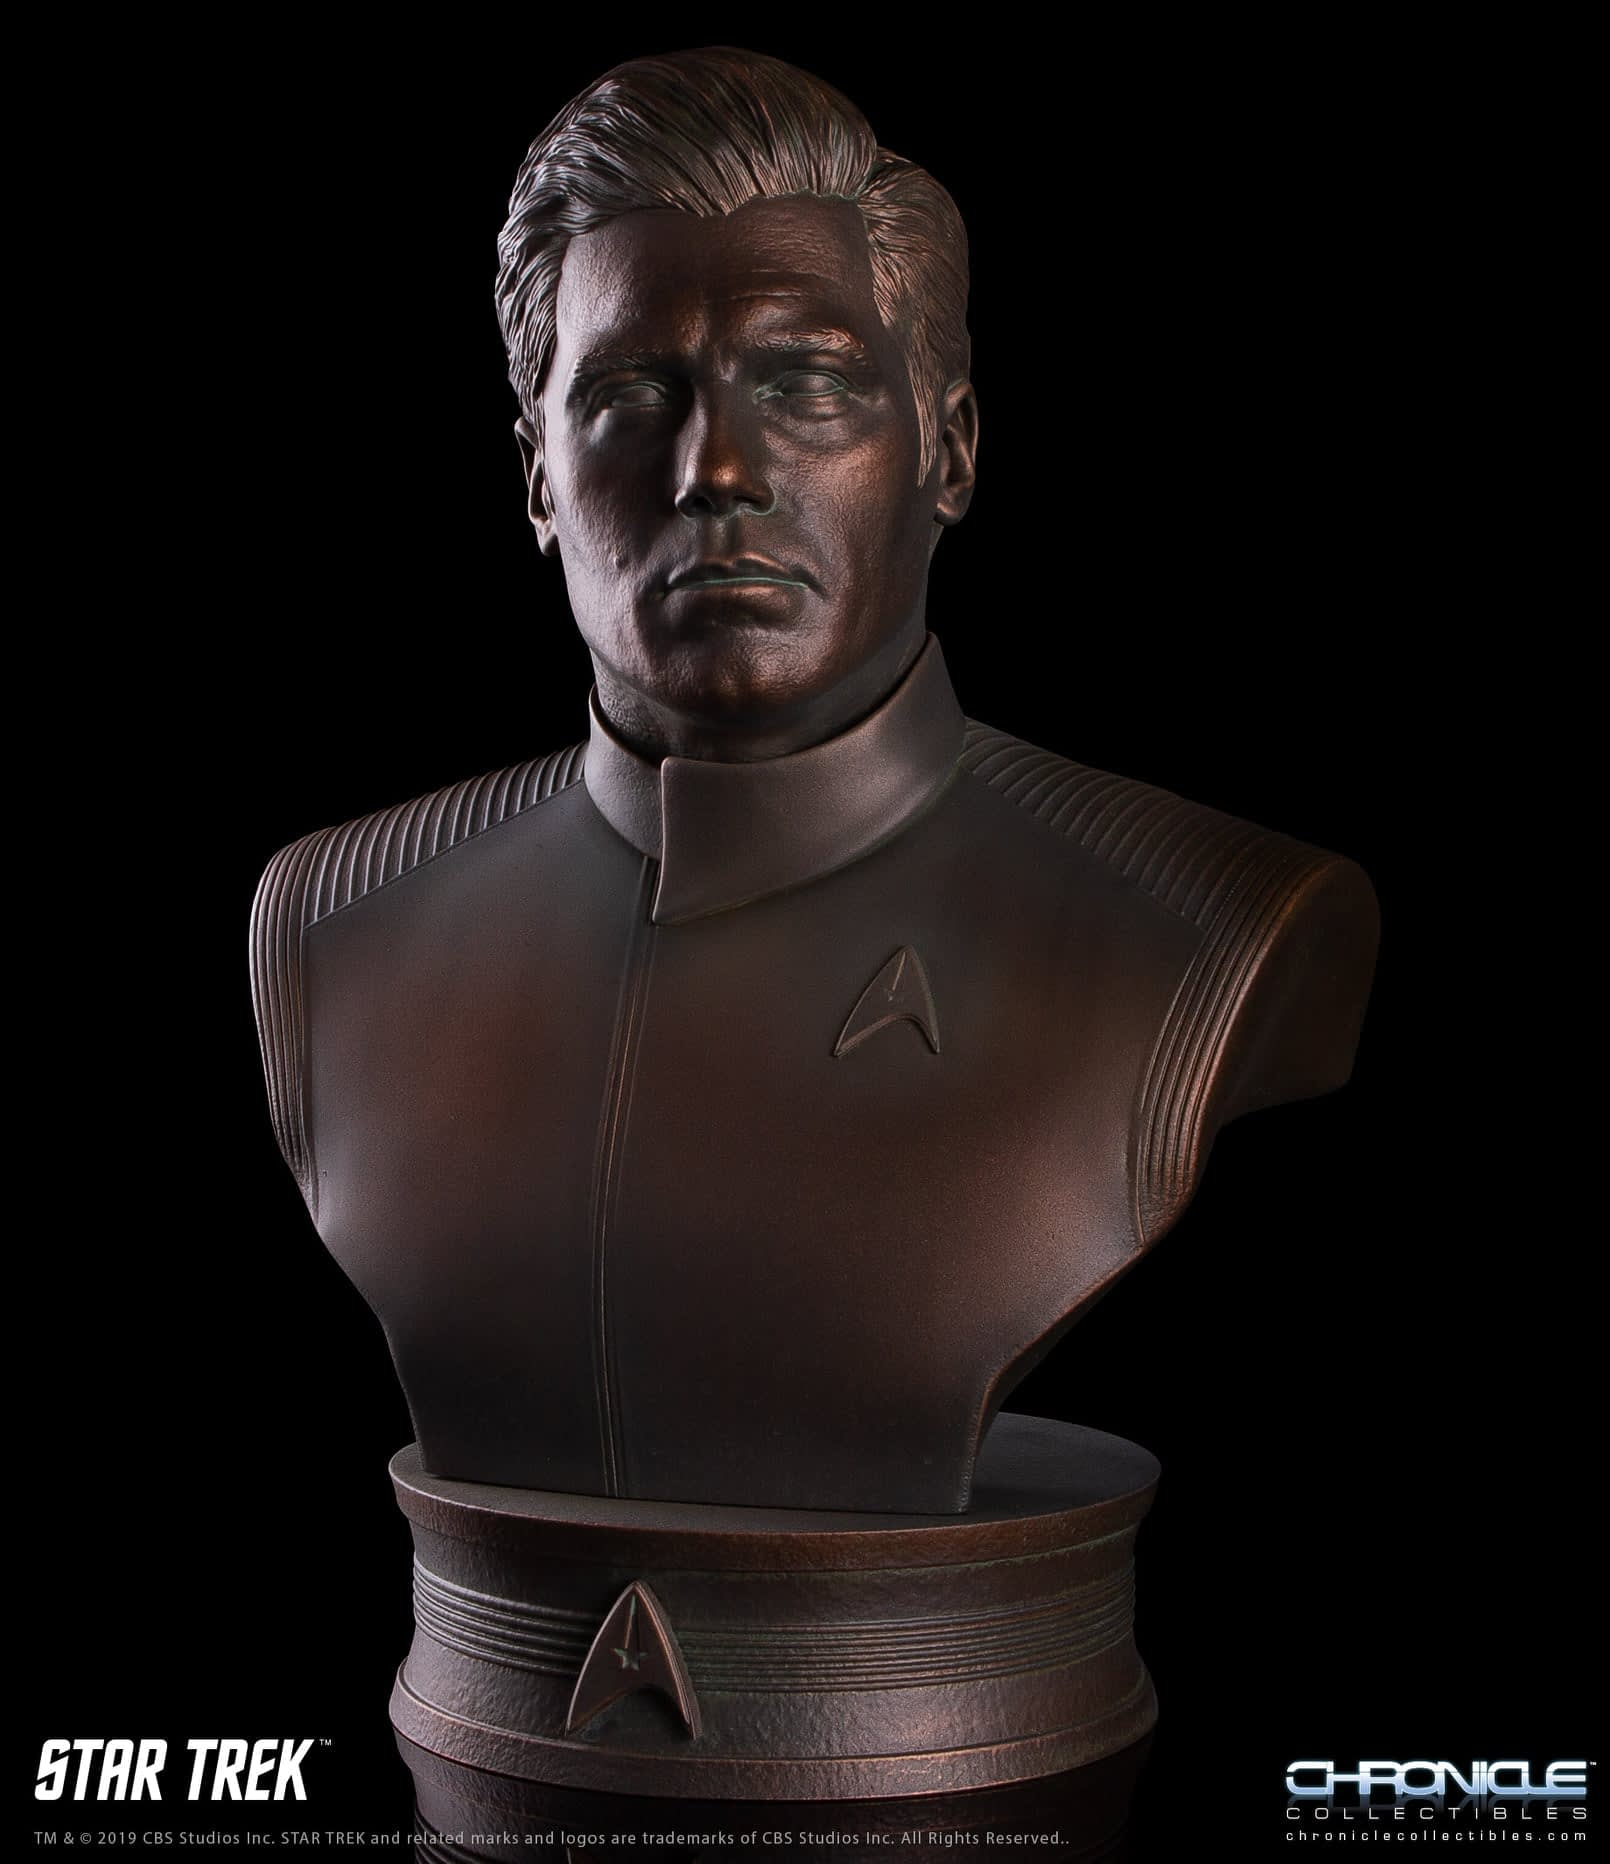 Star Trek Busts Are Here for You to Discover